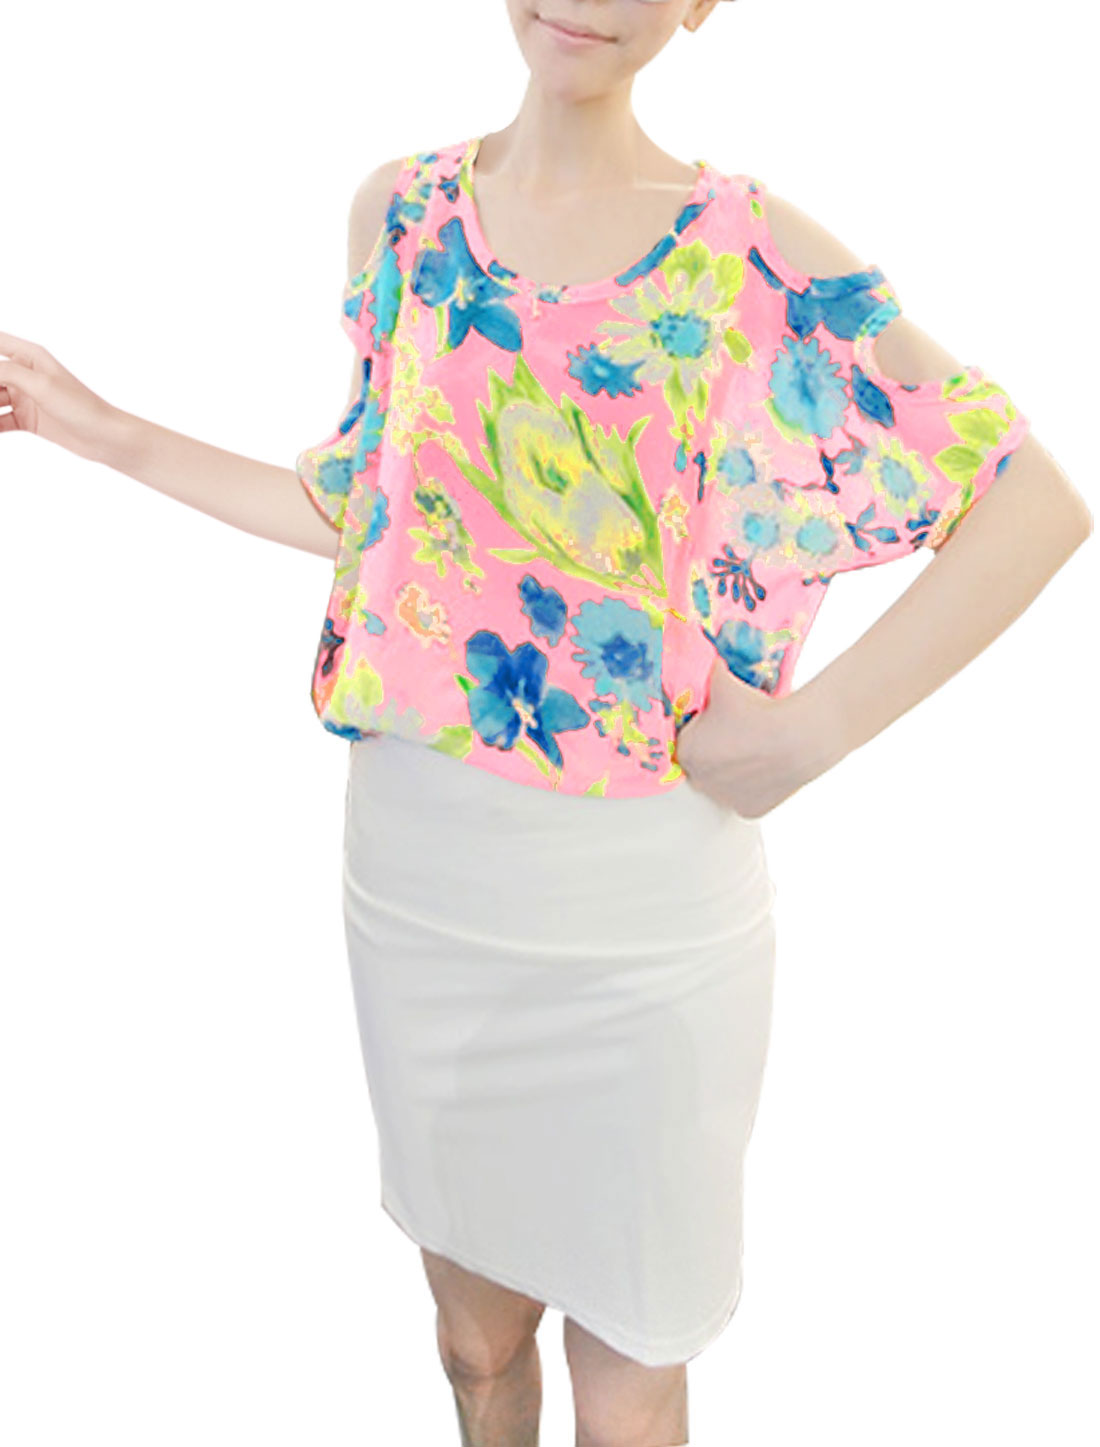 Floral Prints Batwing Sleeve Chic Chiffon Pink Blouse for Lady XS